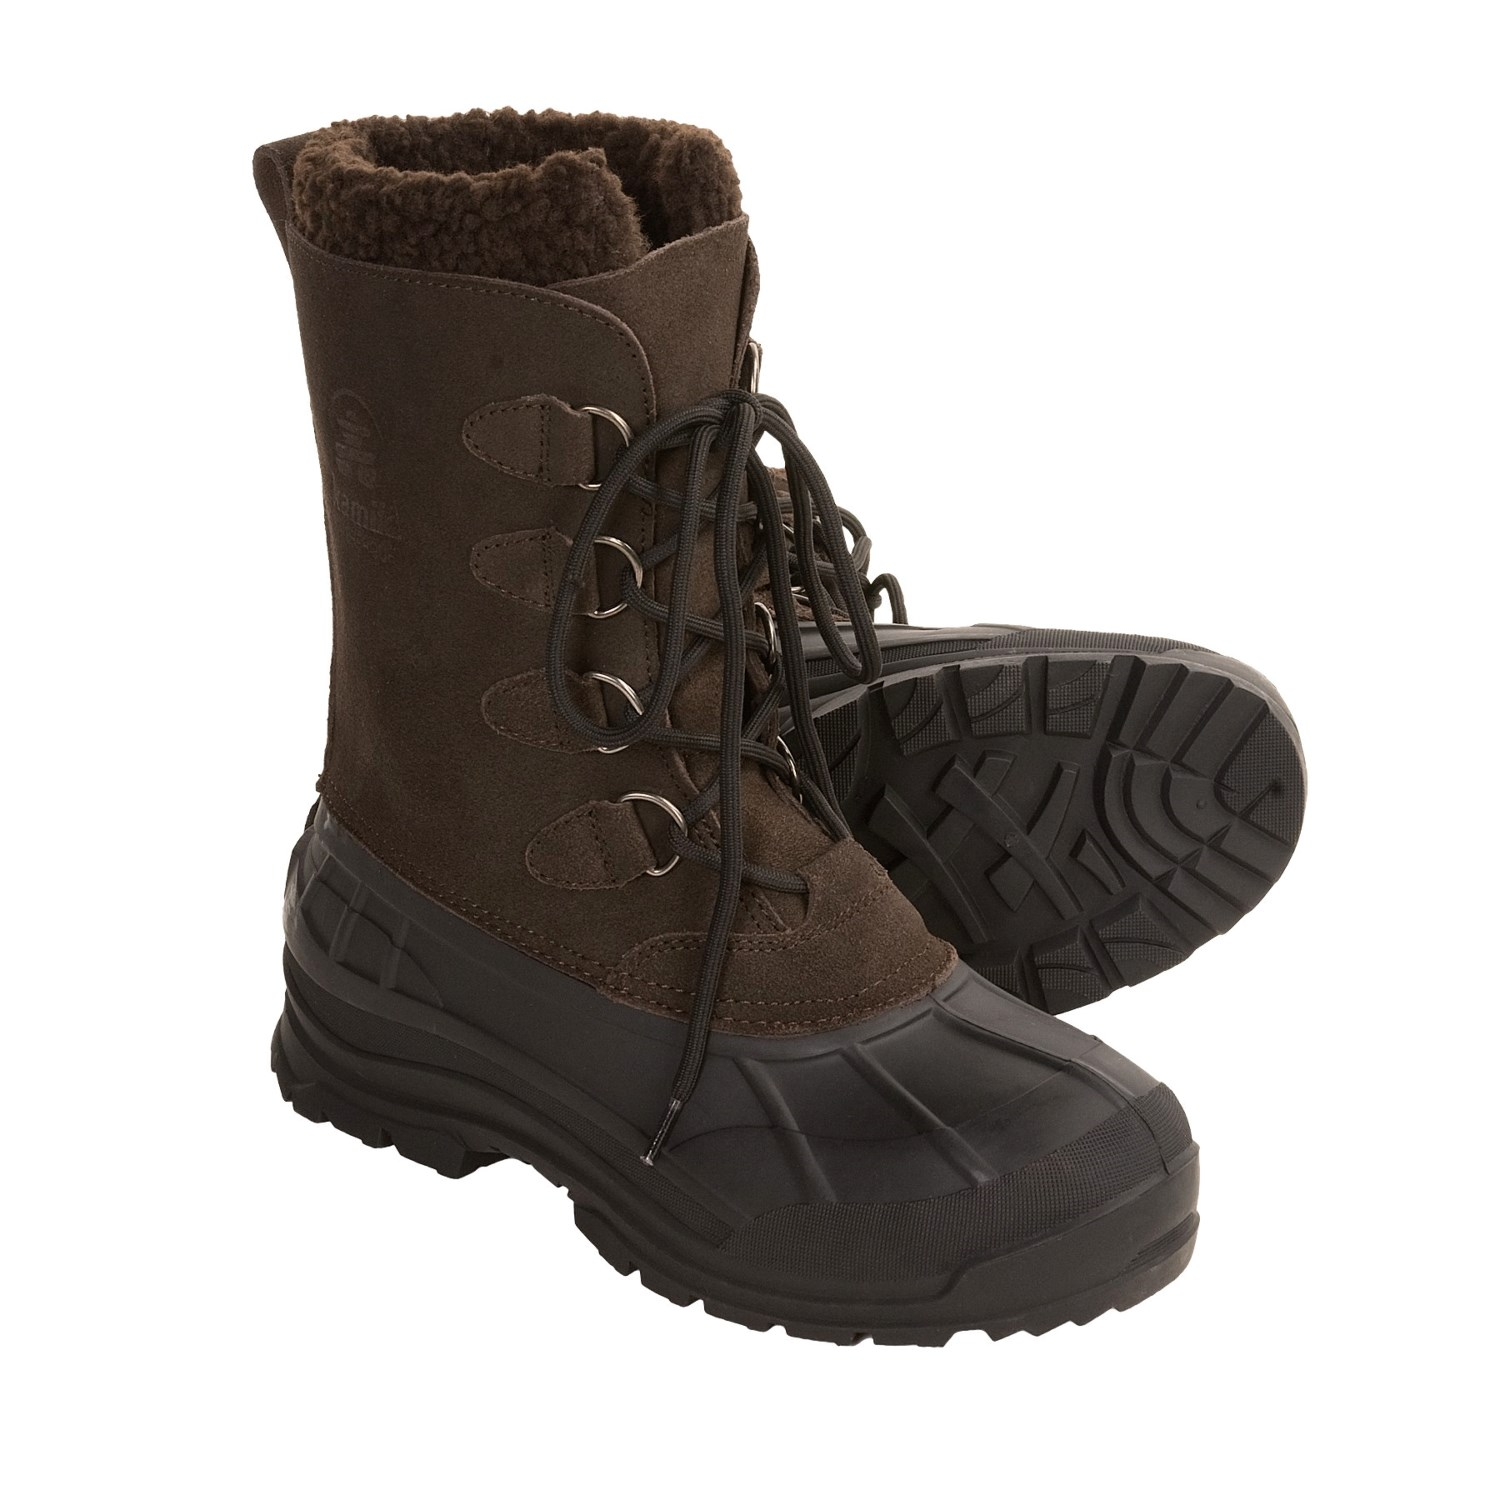 Top Rated Mens Winter Boots | Planetary Skin Institute